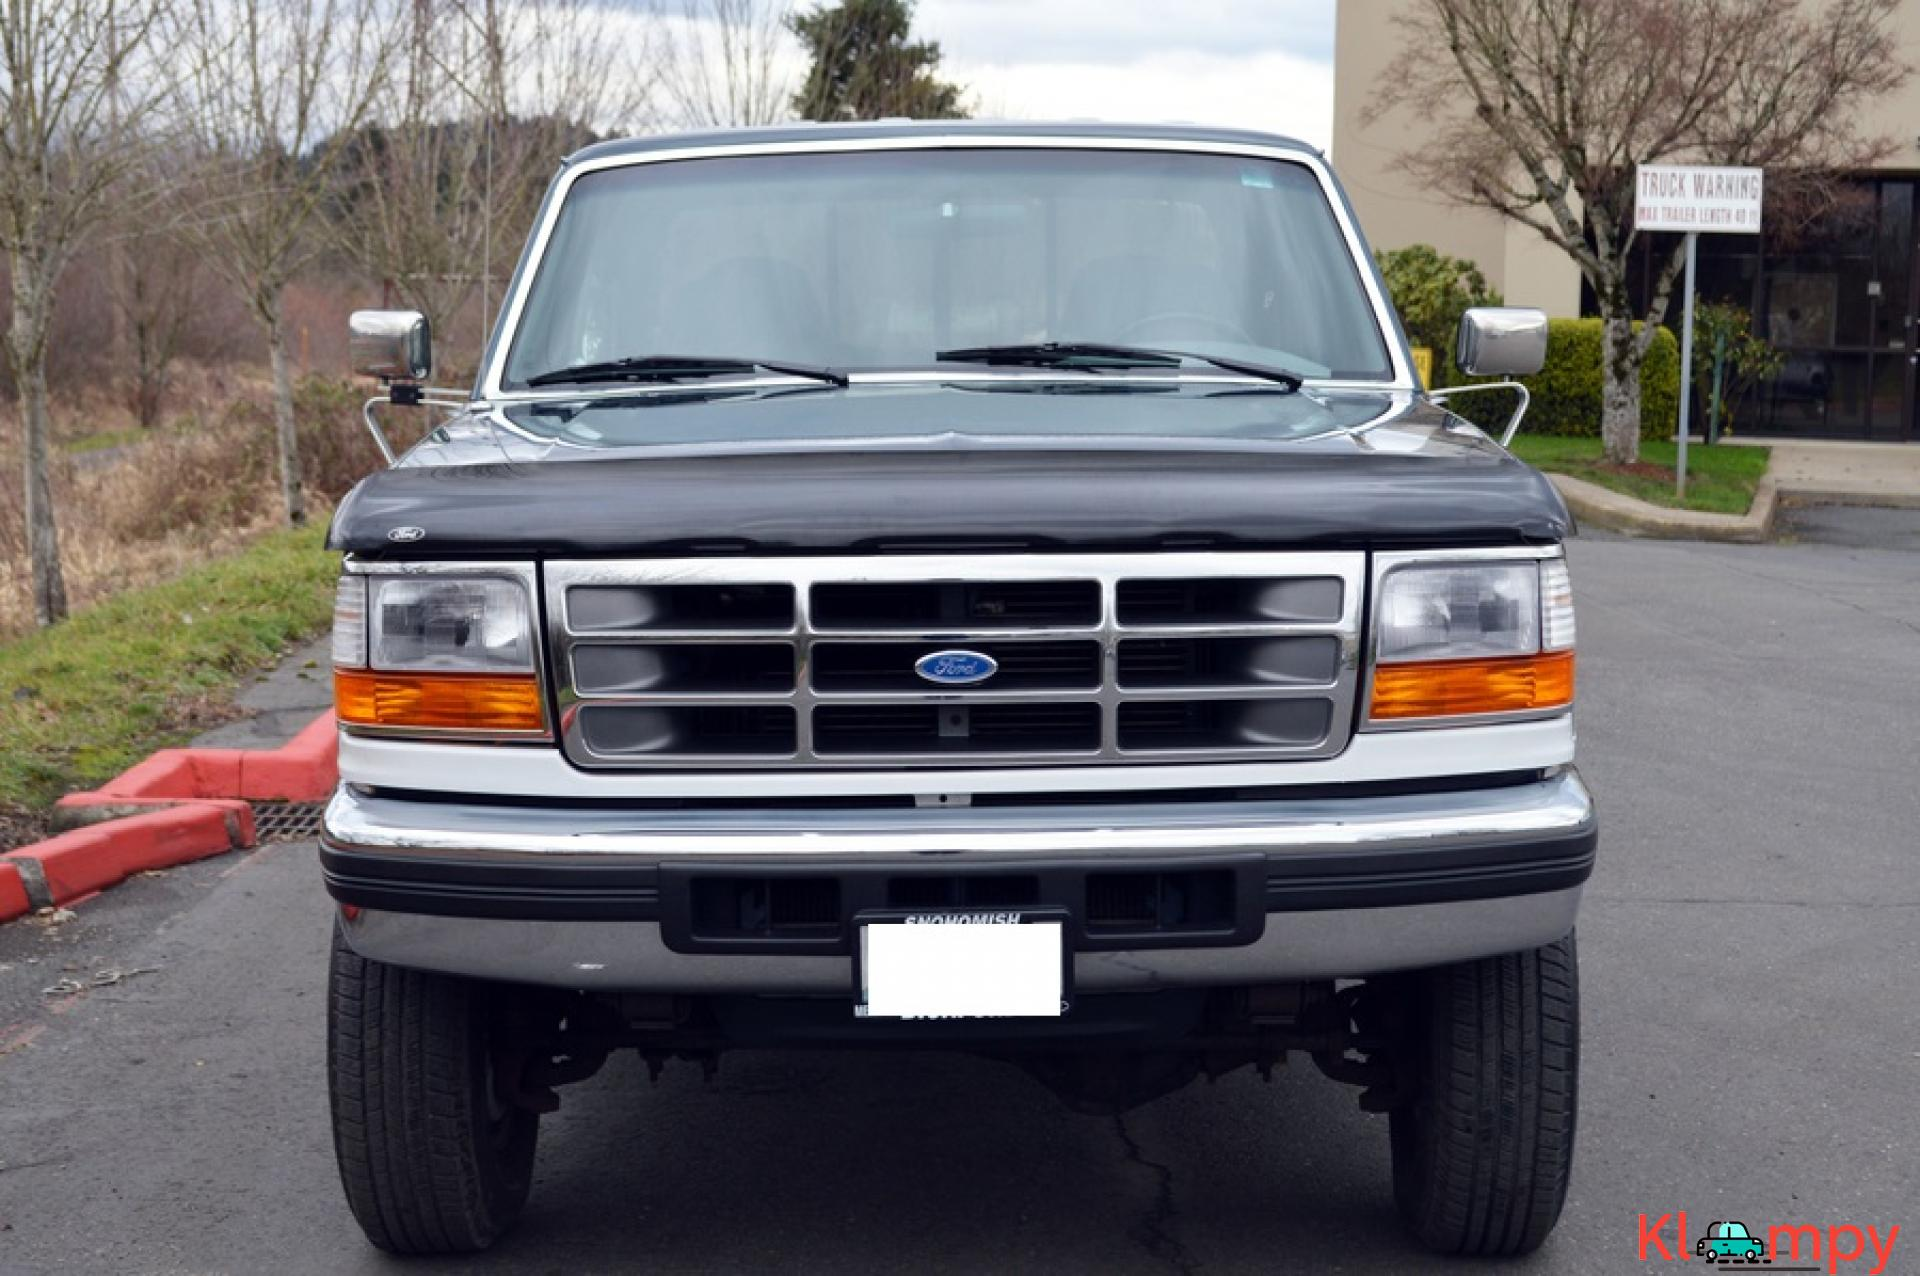 1997 FORD F-350 CREW CAB LONG BED 4WD 7.3L - 10/20